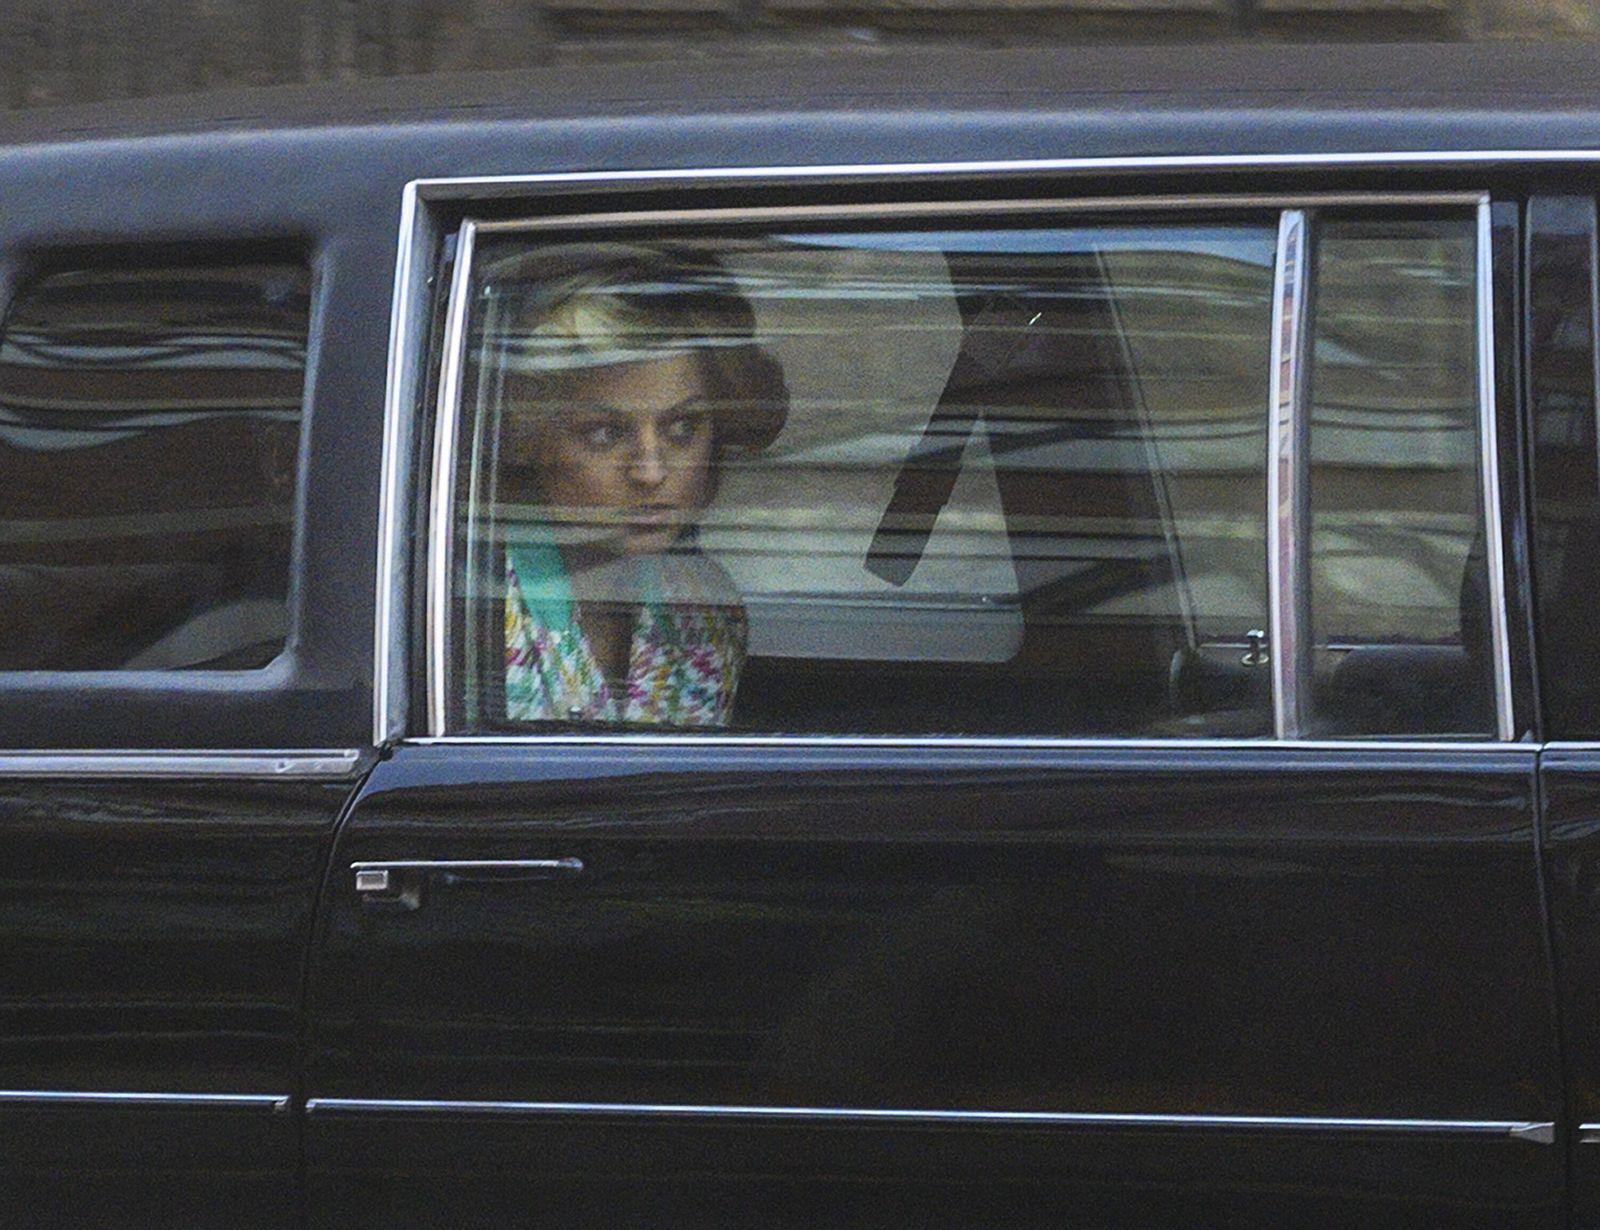 February 8, 2020, Manchester, United Kingdom: Actress EMMA CORRIN is seen in a limo as she plays Diana, Princess of Wale